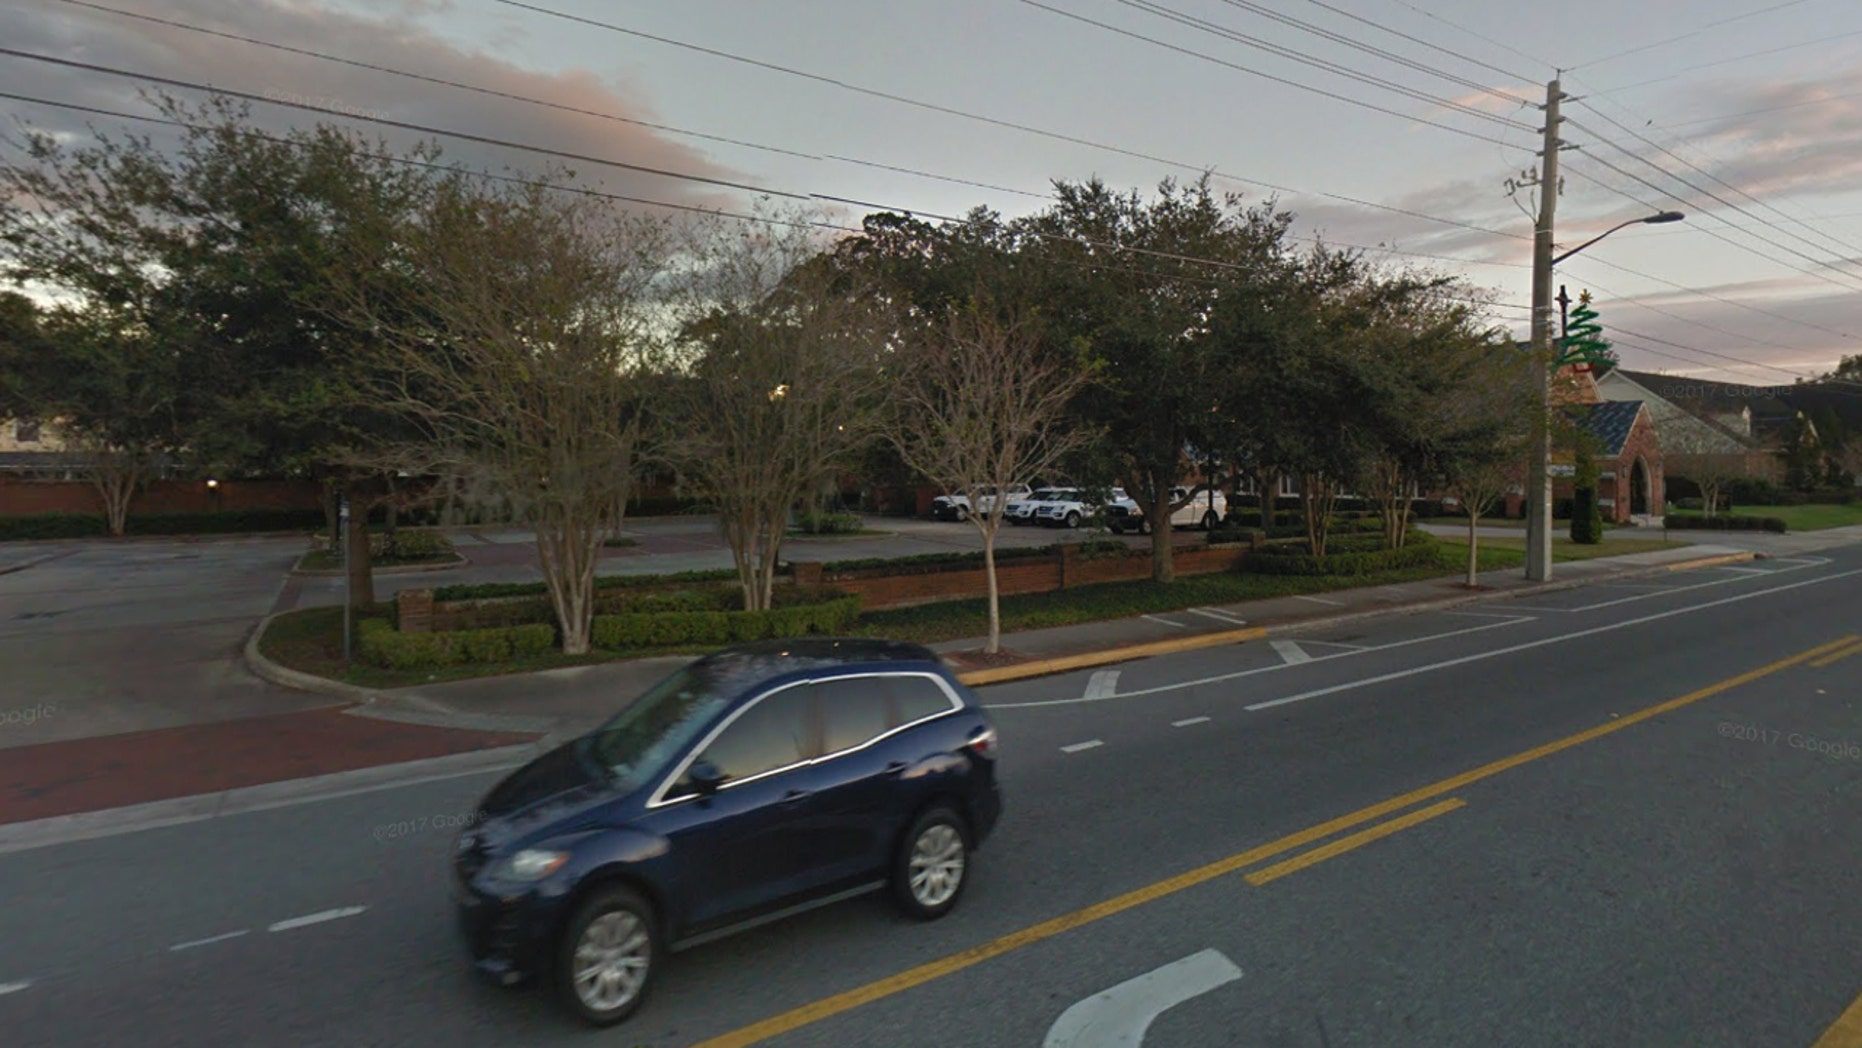 A teenage girl was found tied with her earbuds to a tree in Orlando on Friday, officials said.